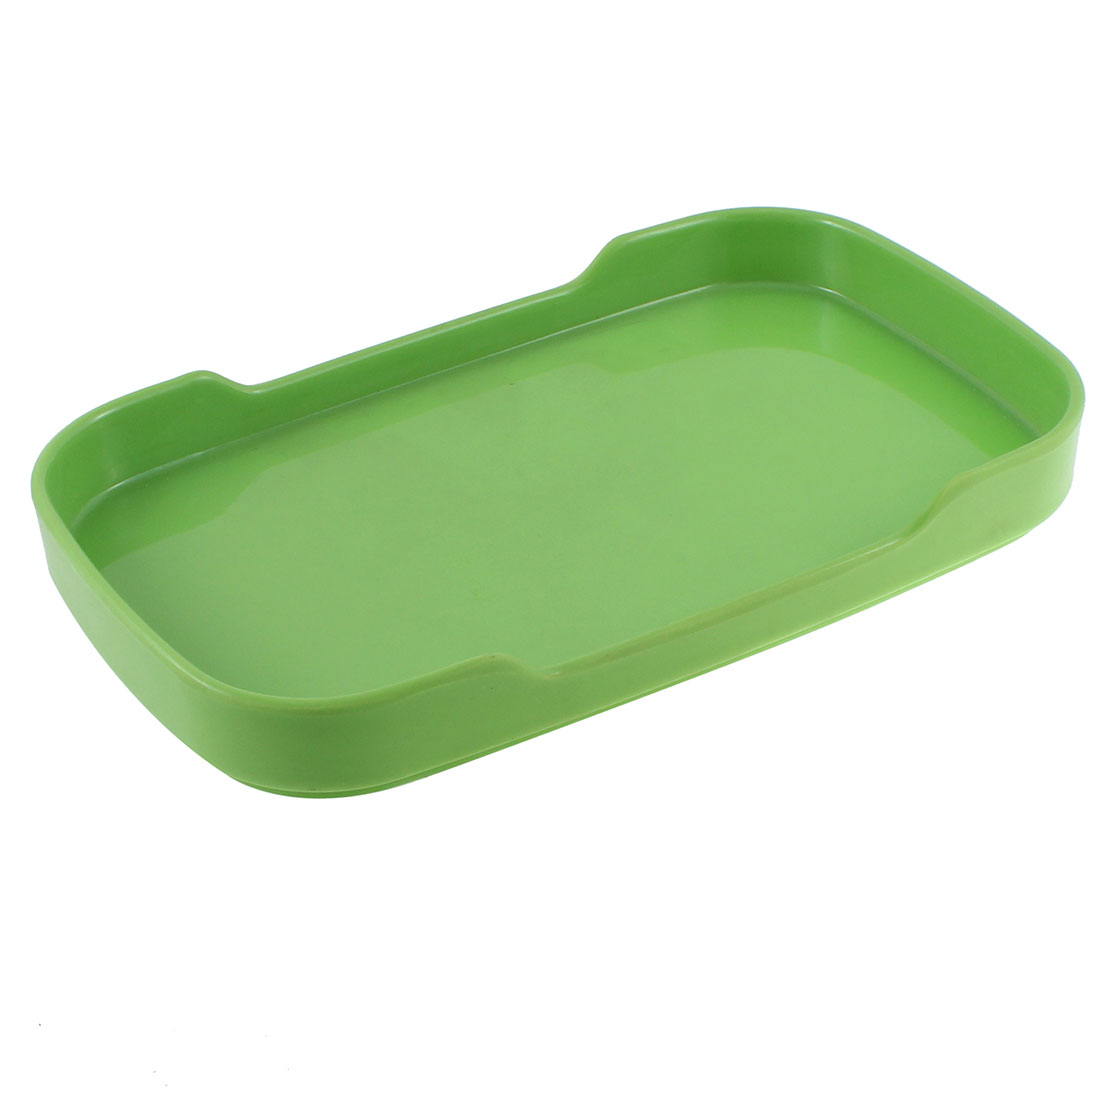 Food Fruit Plastic Rectangle Shaped Tray Dish Plate Tablewear Green 8.5''